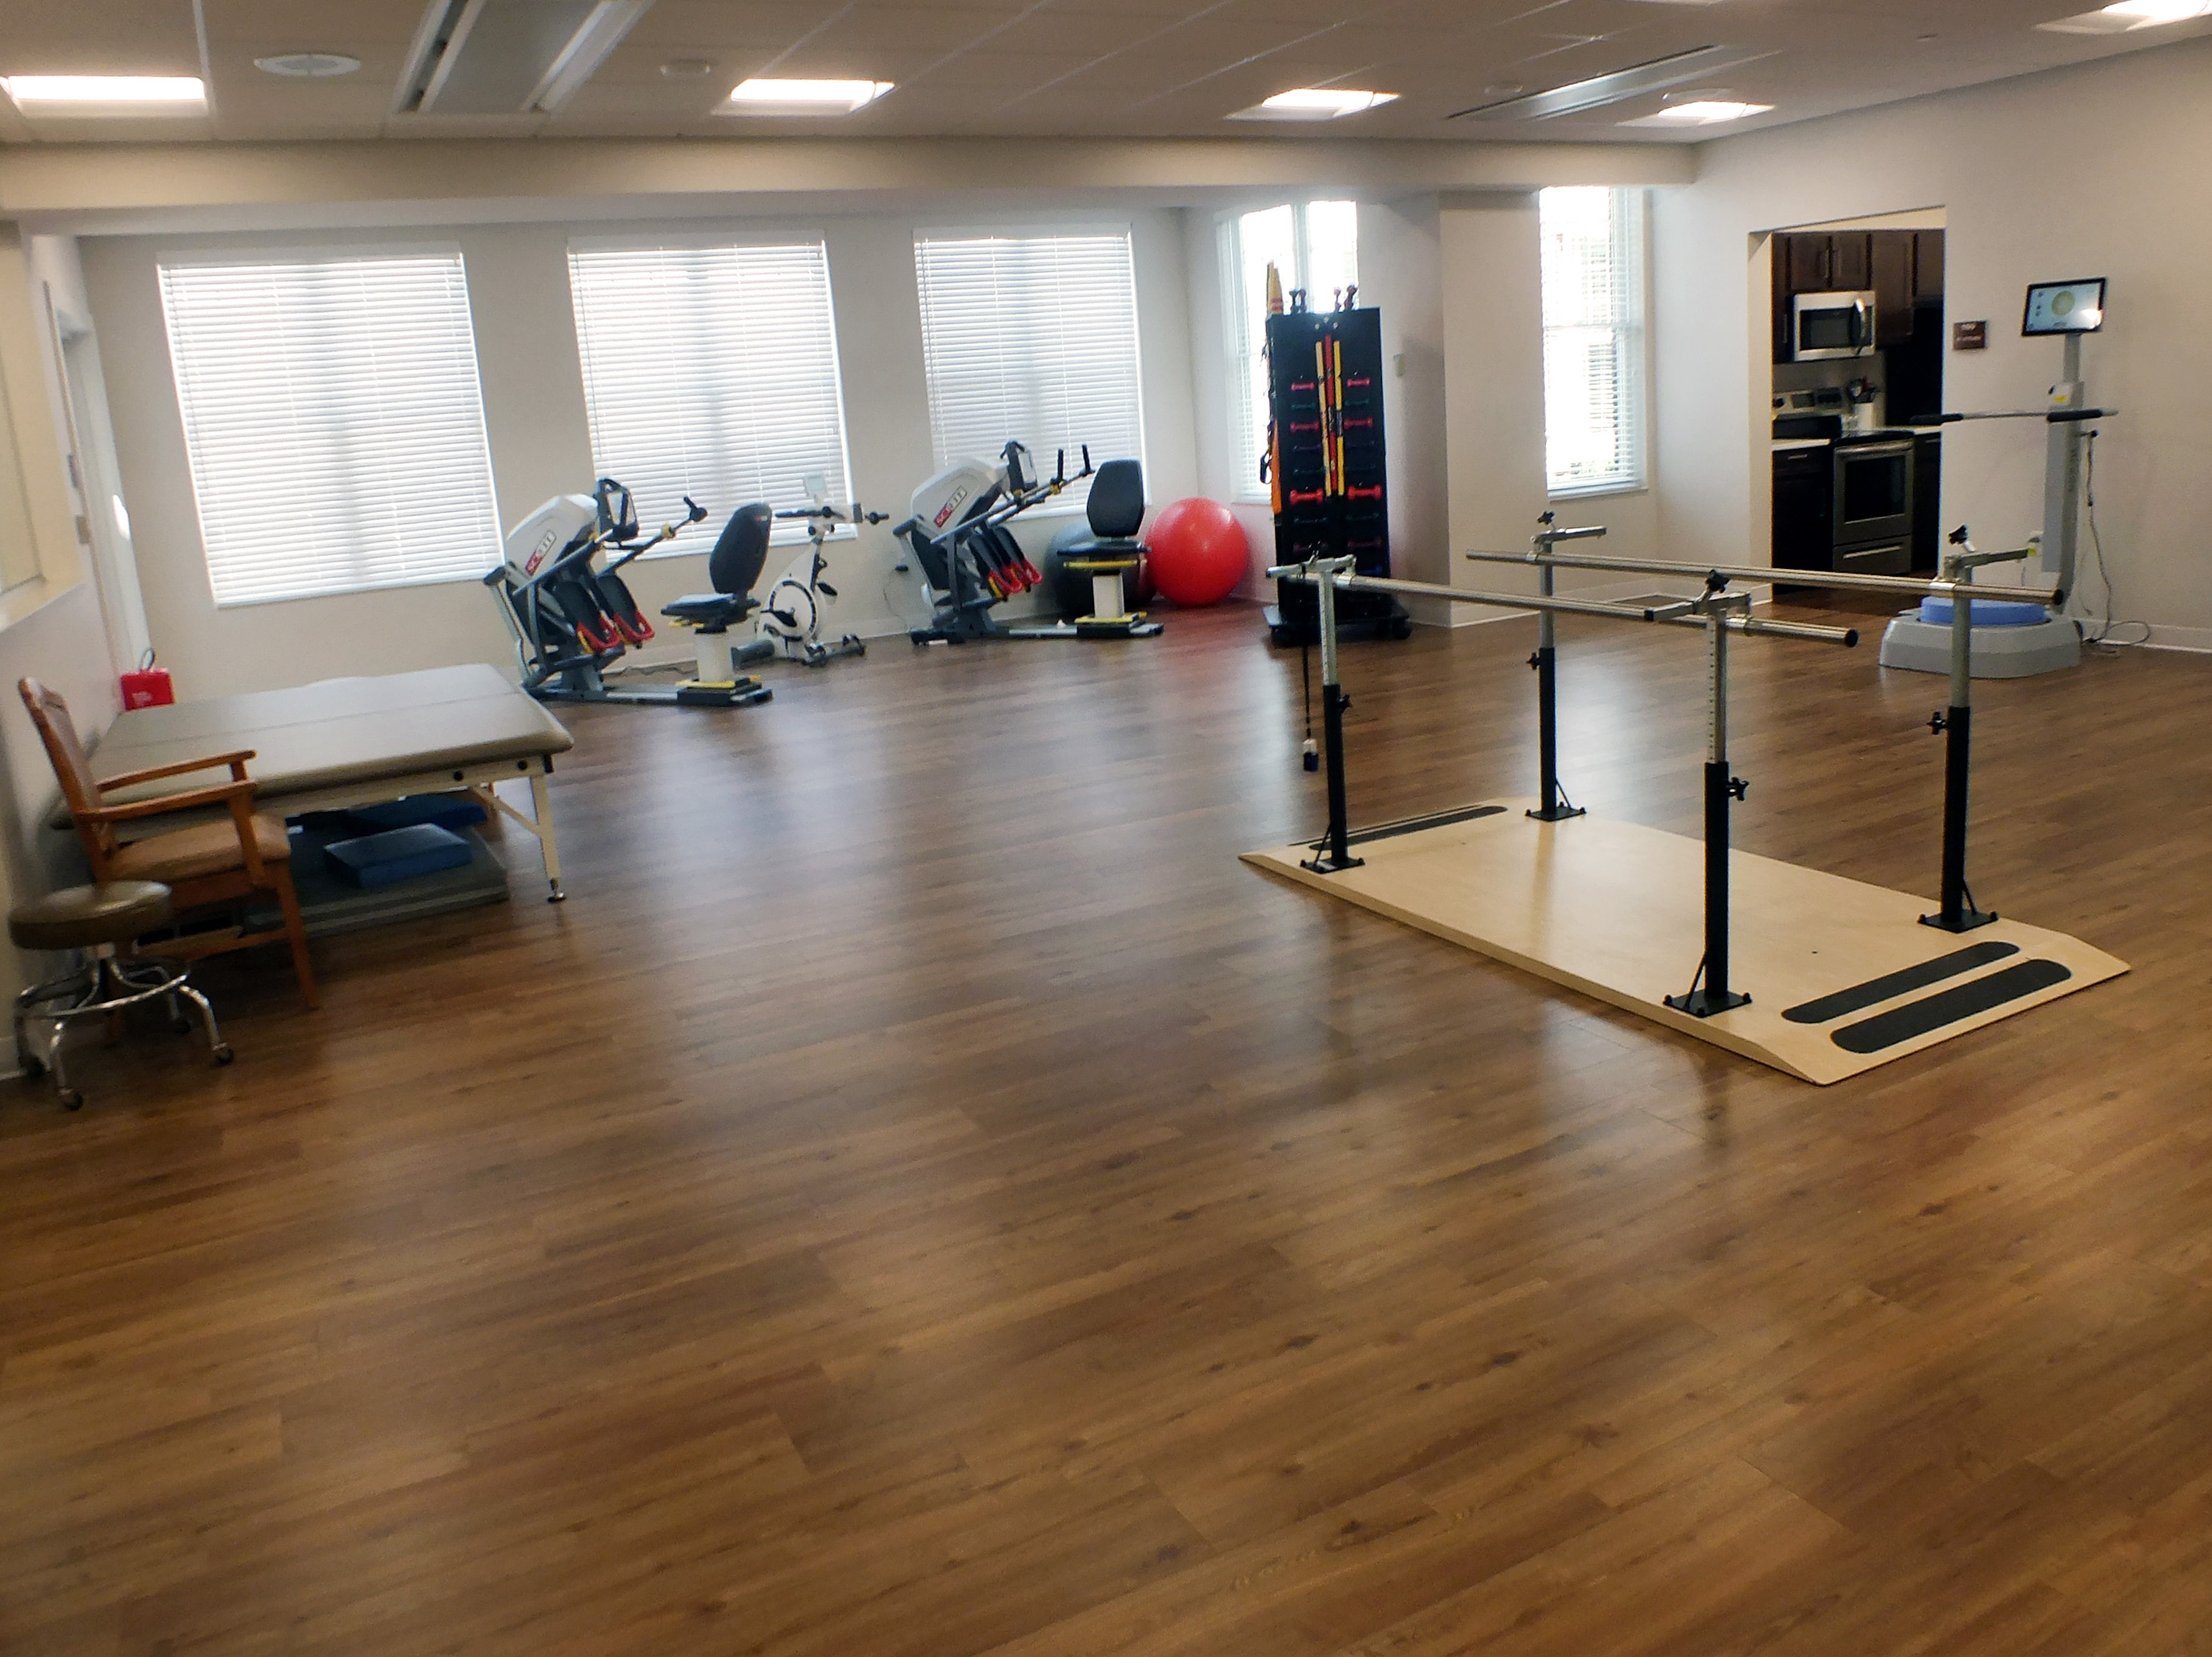 Therapy gym 3